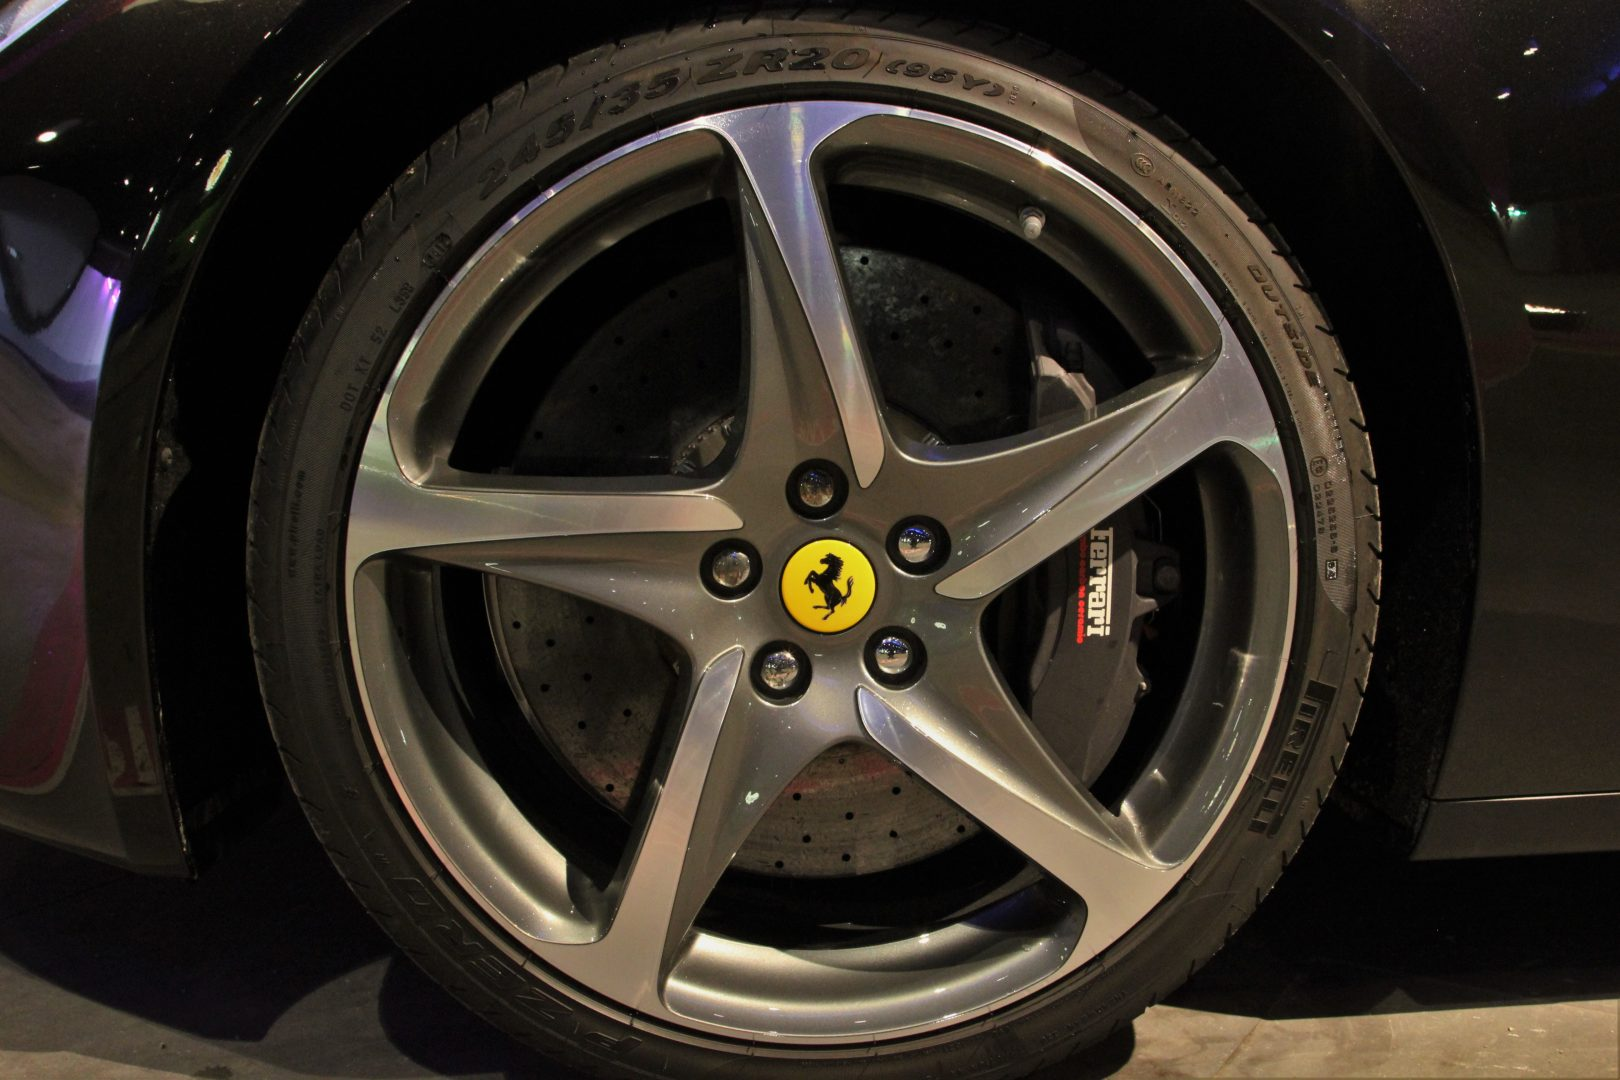 AIL Ferrari FF V12 Carbon Ceramic Brake 12